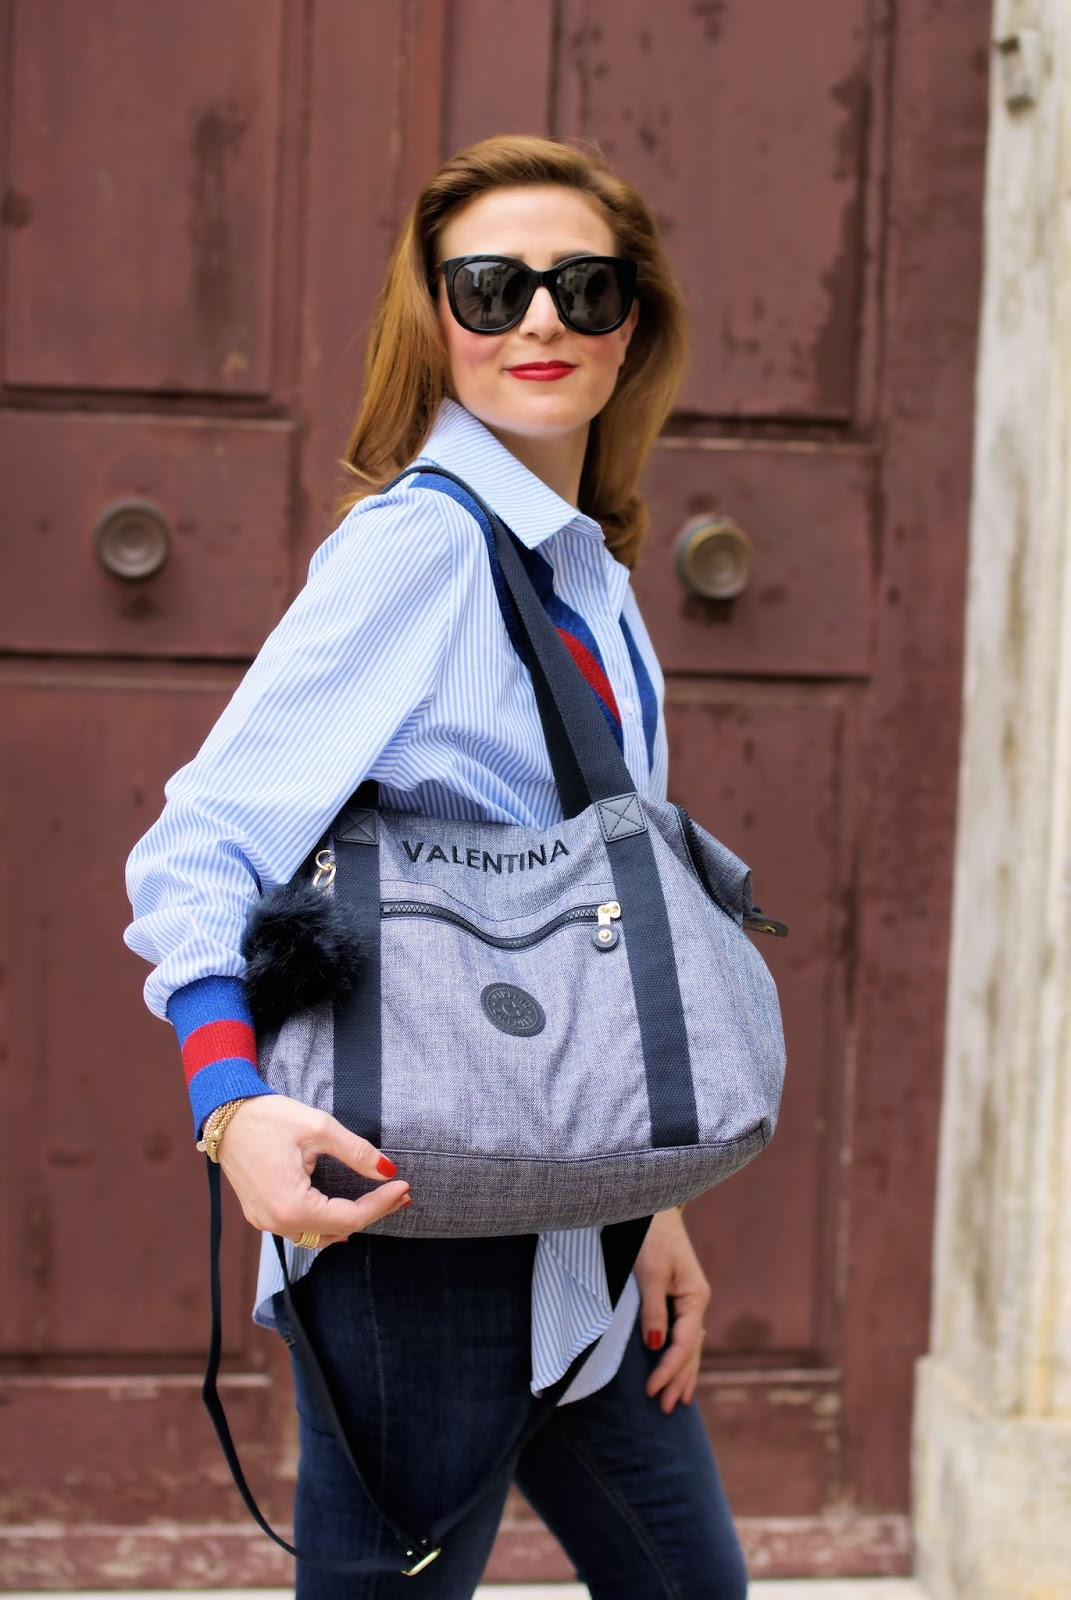 Kipling personalized bag: customized bag on Fashion and Cookies fashion blog, fashion blogger style